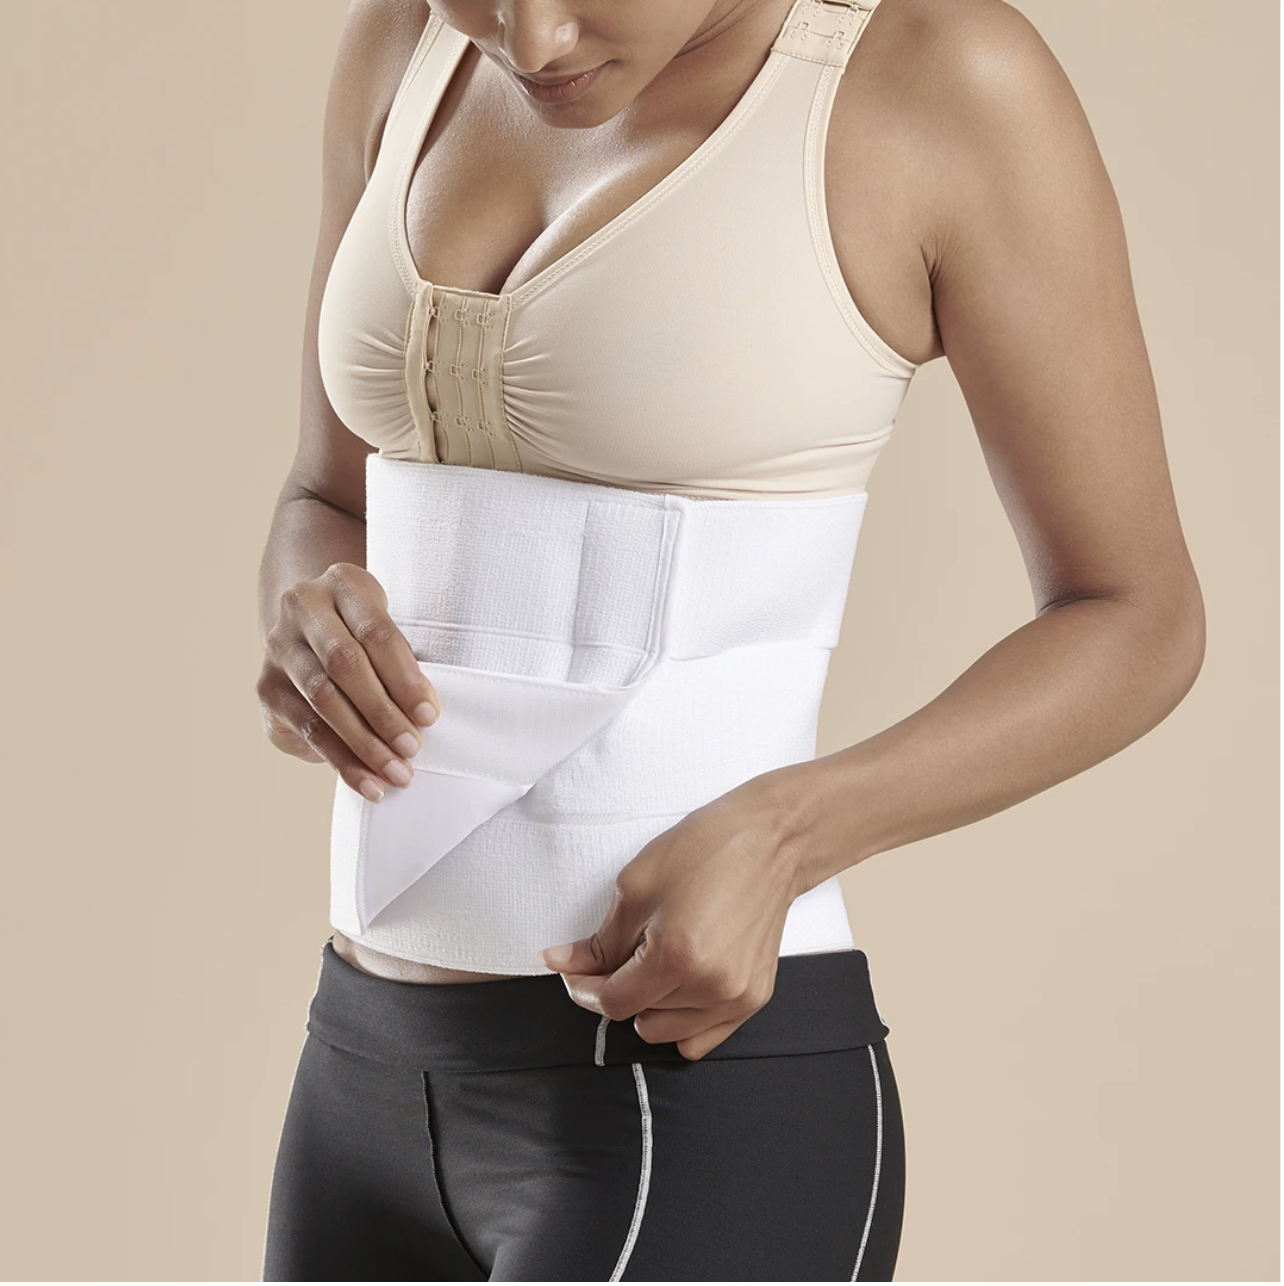 Best Abdominal Binder 2020: AB3F7- ABDOMINAL BINDER 3 PANEL WITH LINER 9 INCH